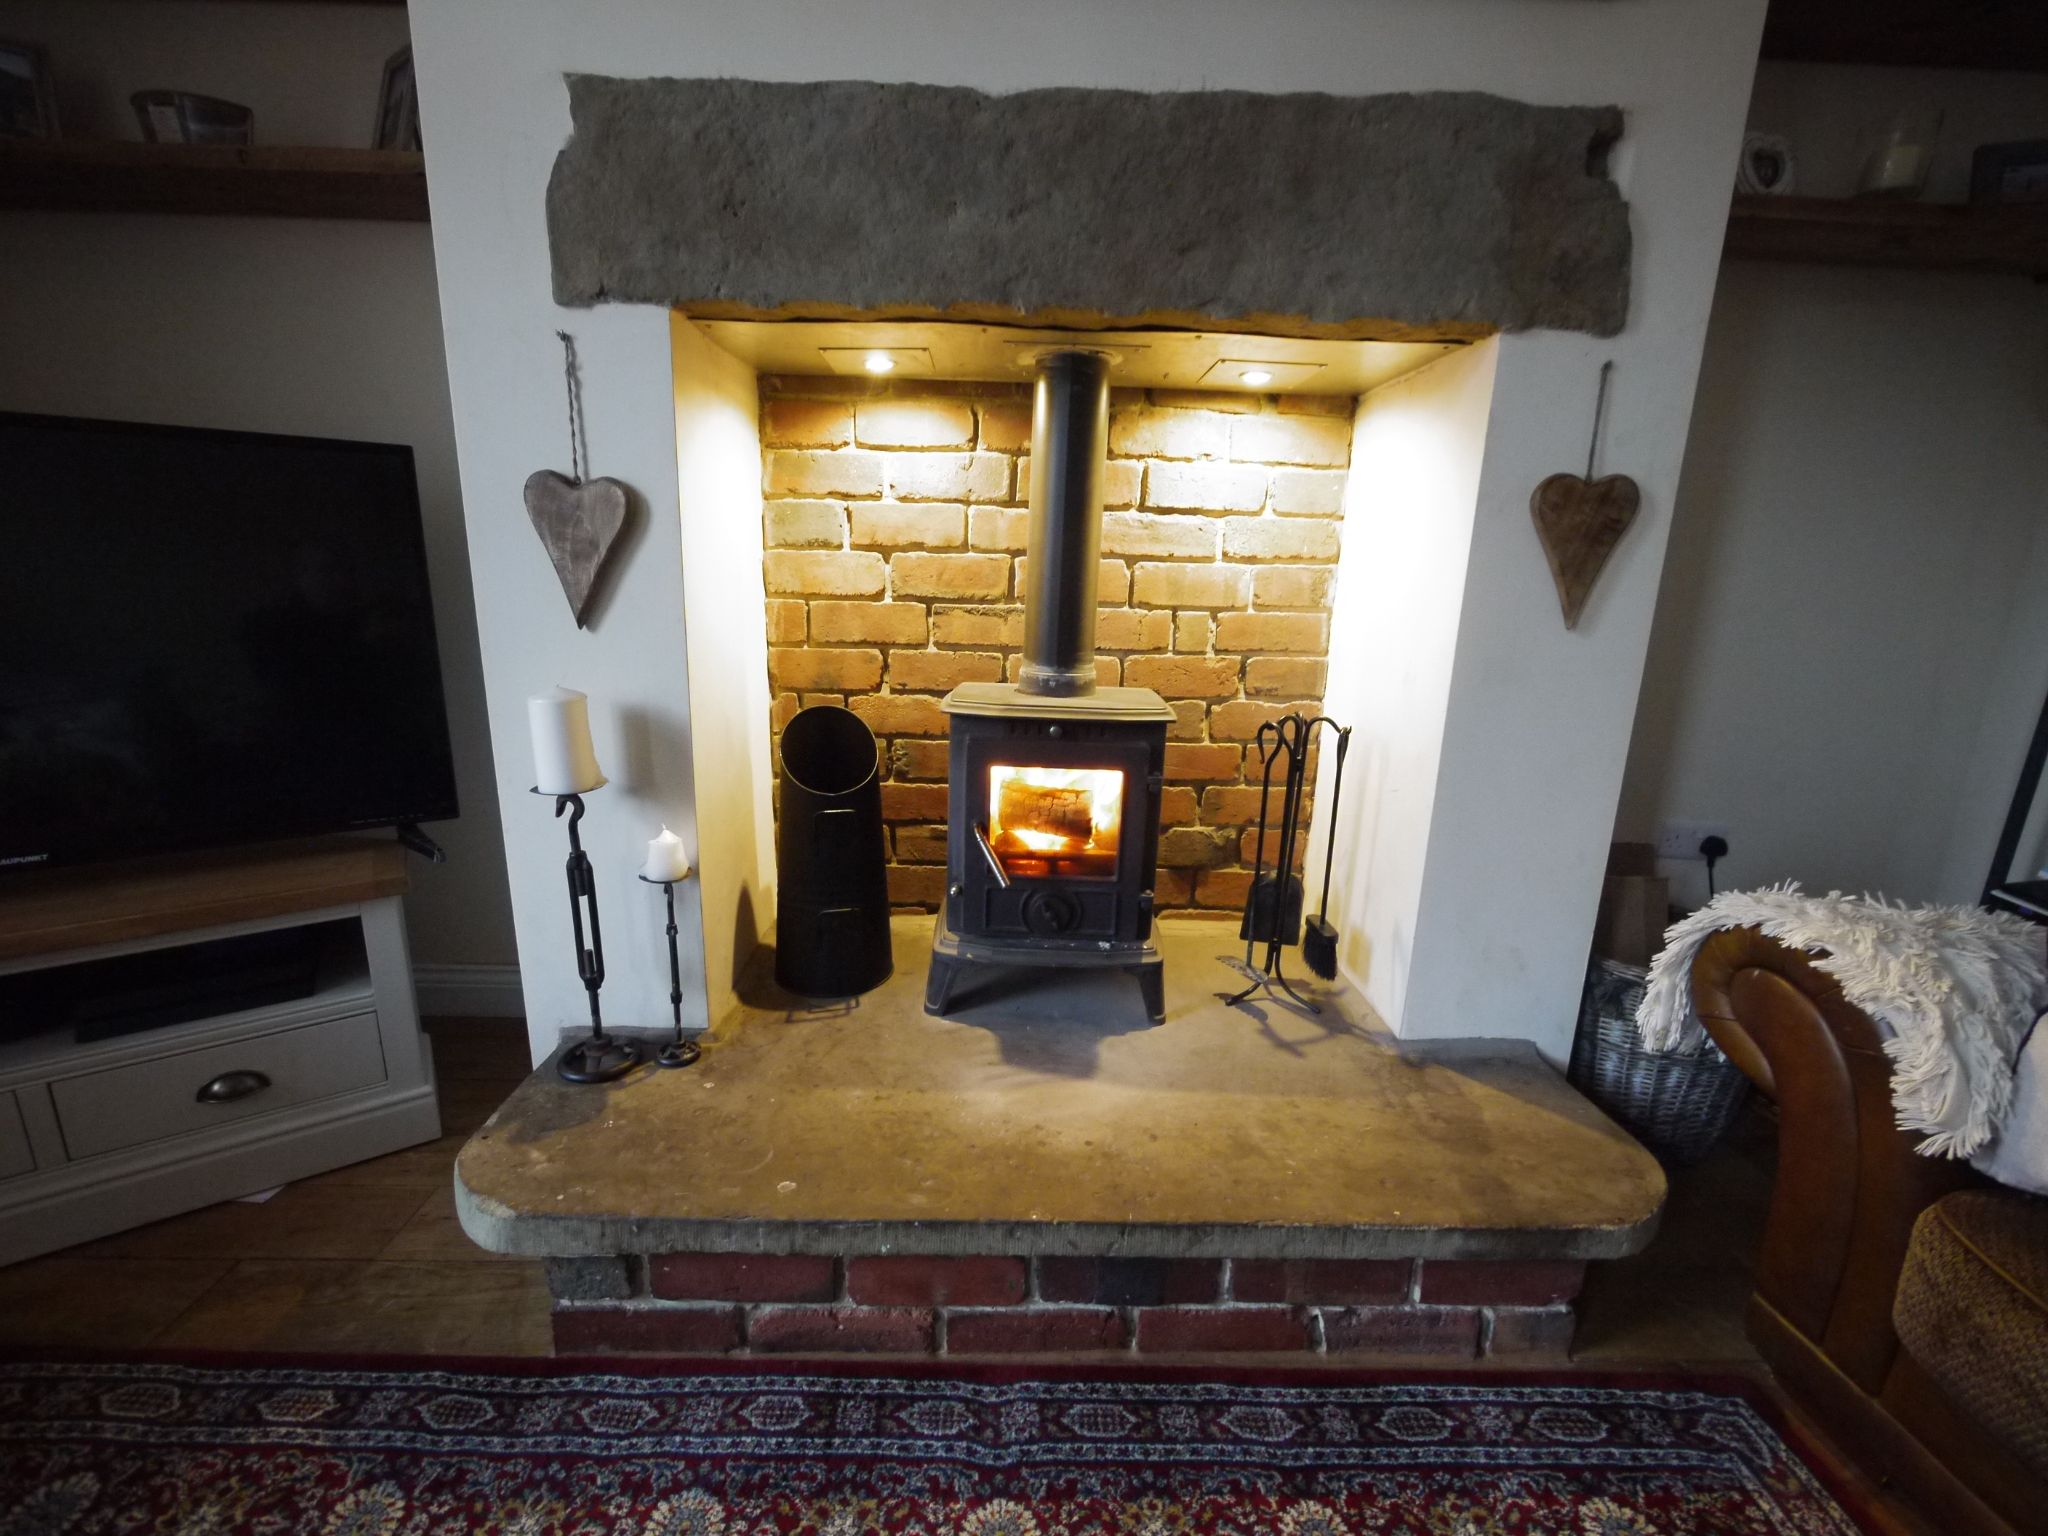 2 bedroom mid terraced house SSTC in Brighouse - Fireplace.